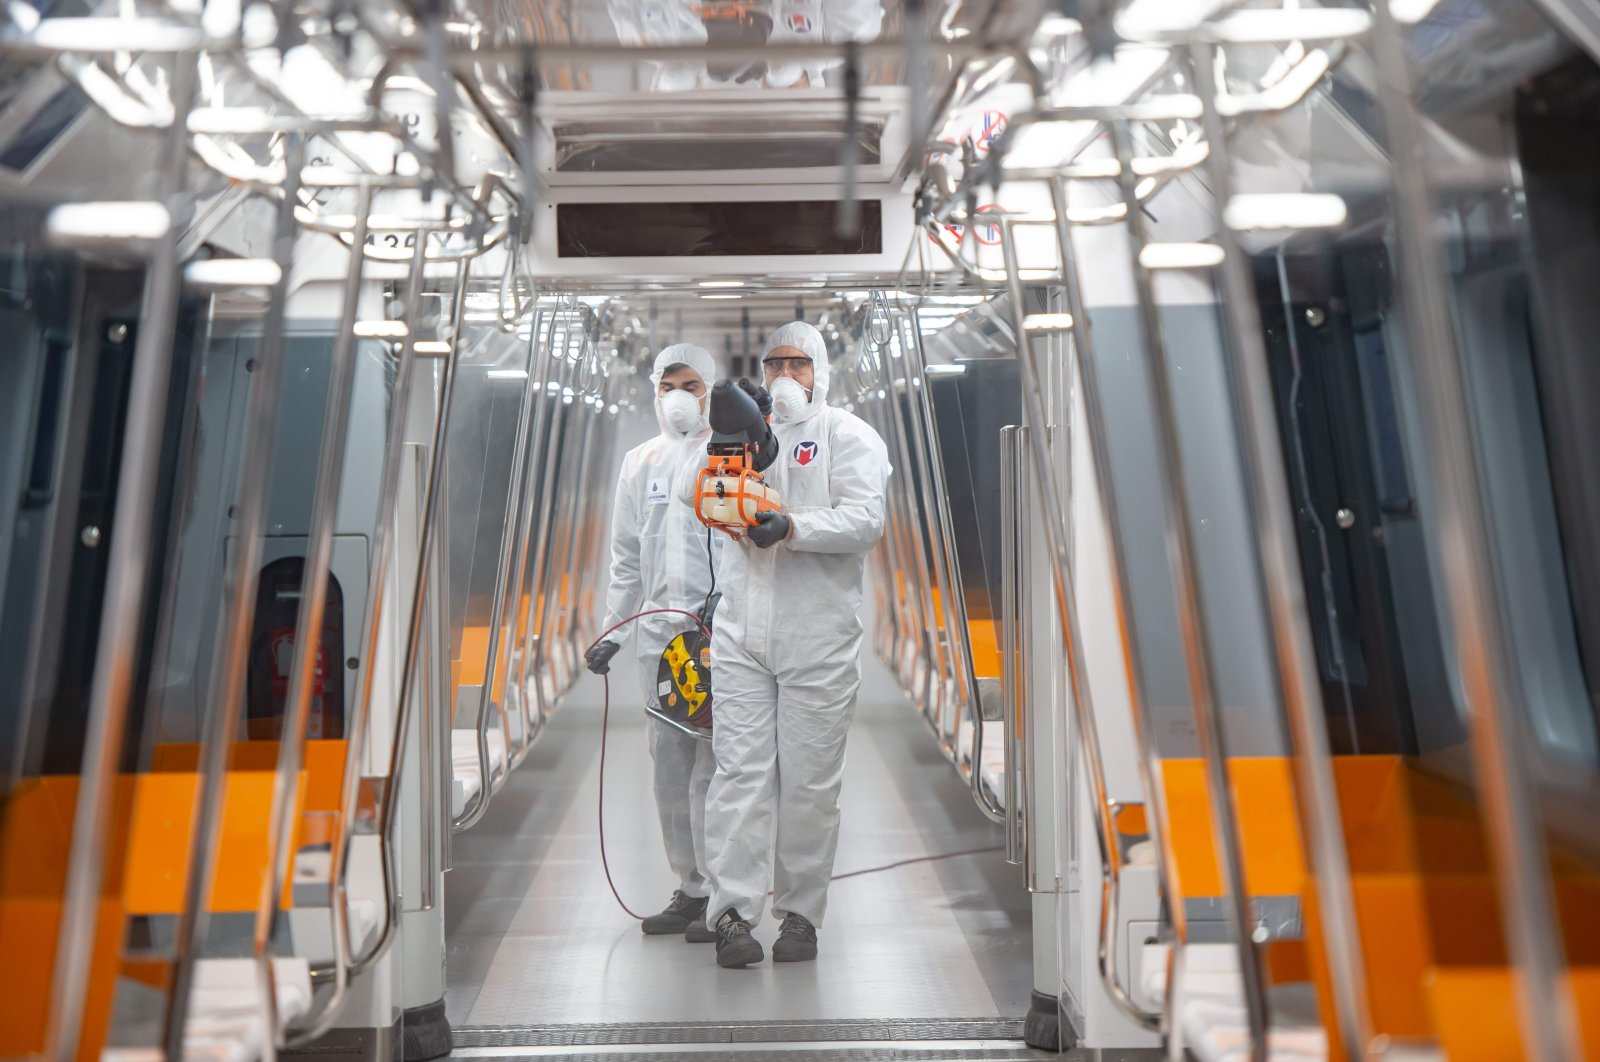 Employees of the Istanbul Municipality wearing protective gear disinfect a subway carriage to prevent the spread of the COVID-19, caused by the novel coronavirus, in Istanbul on March 12, 2020. (AFP Photo)